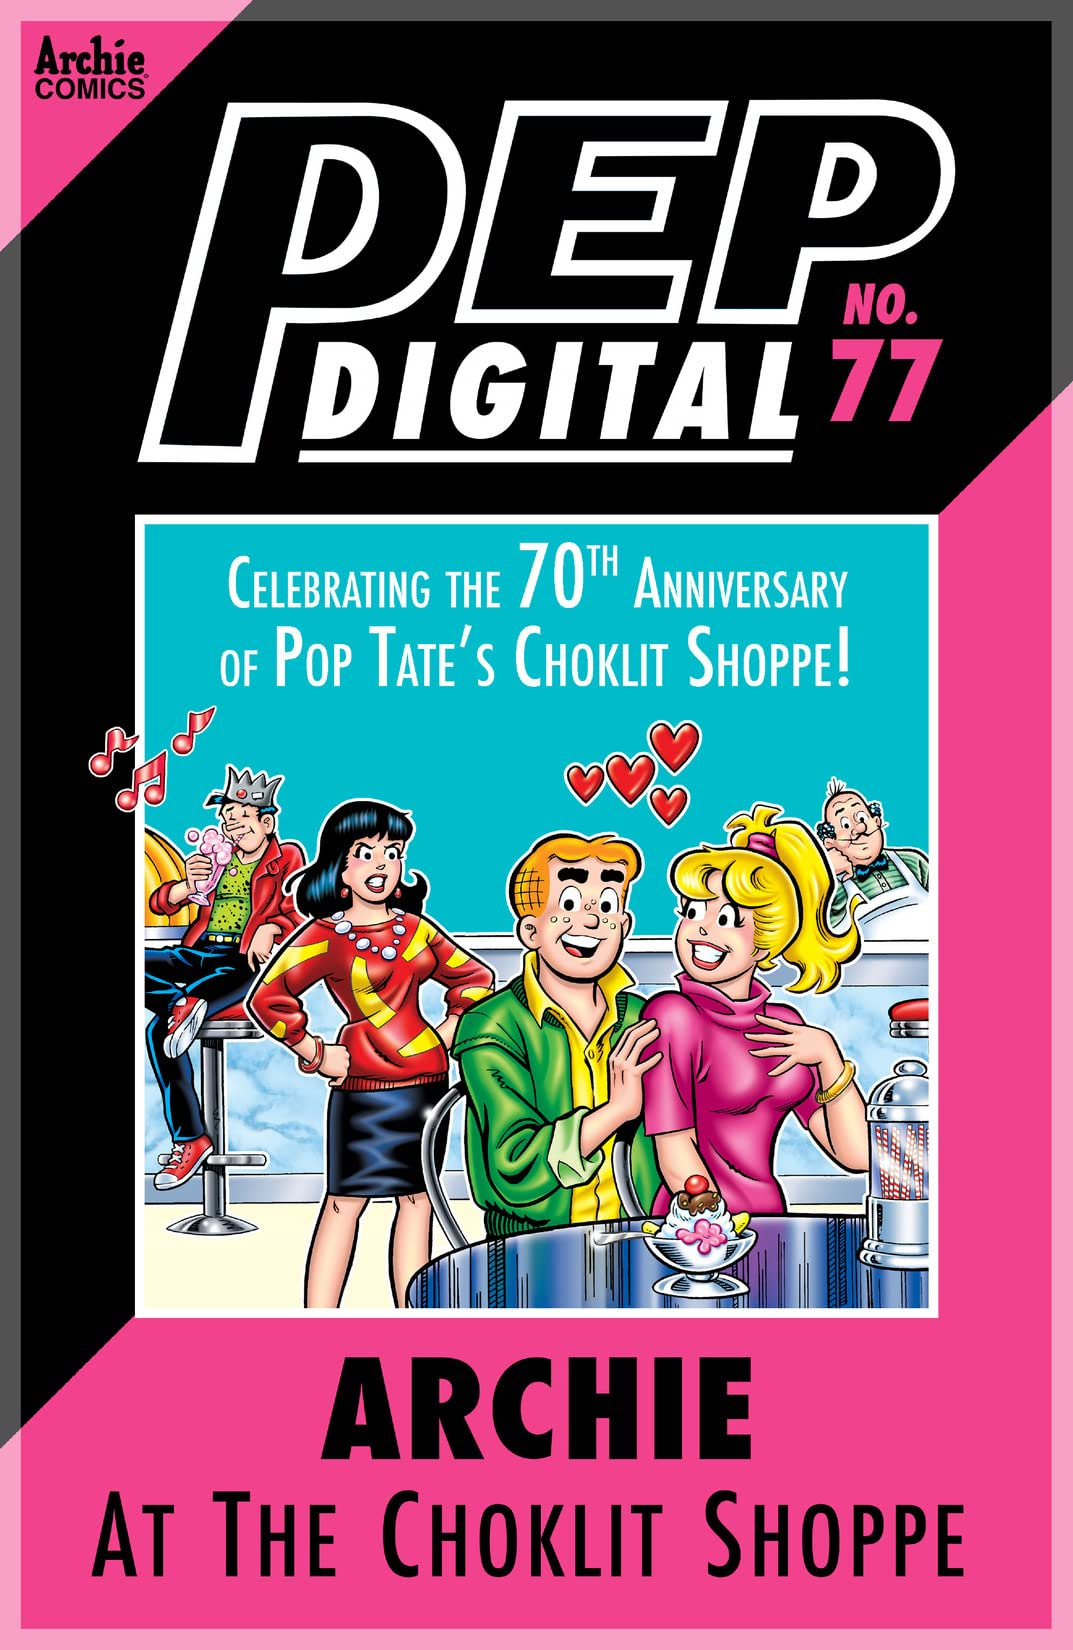 PEP Digital #77: Archie at the Choklit Shoppe